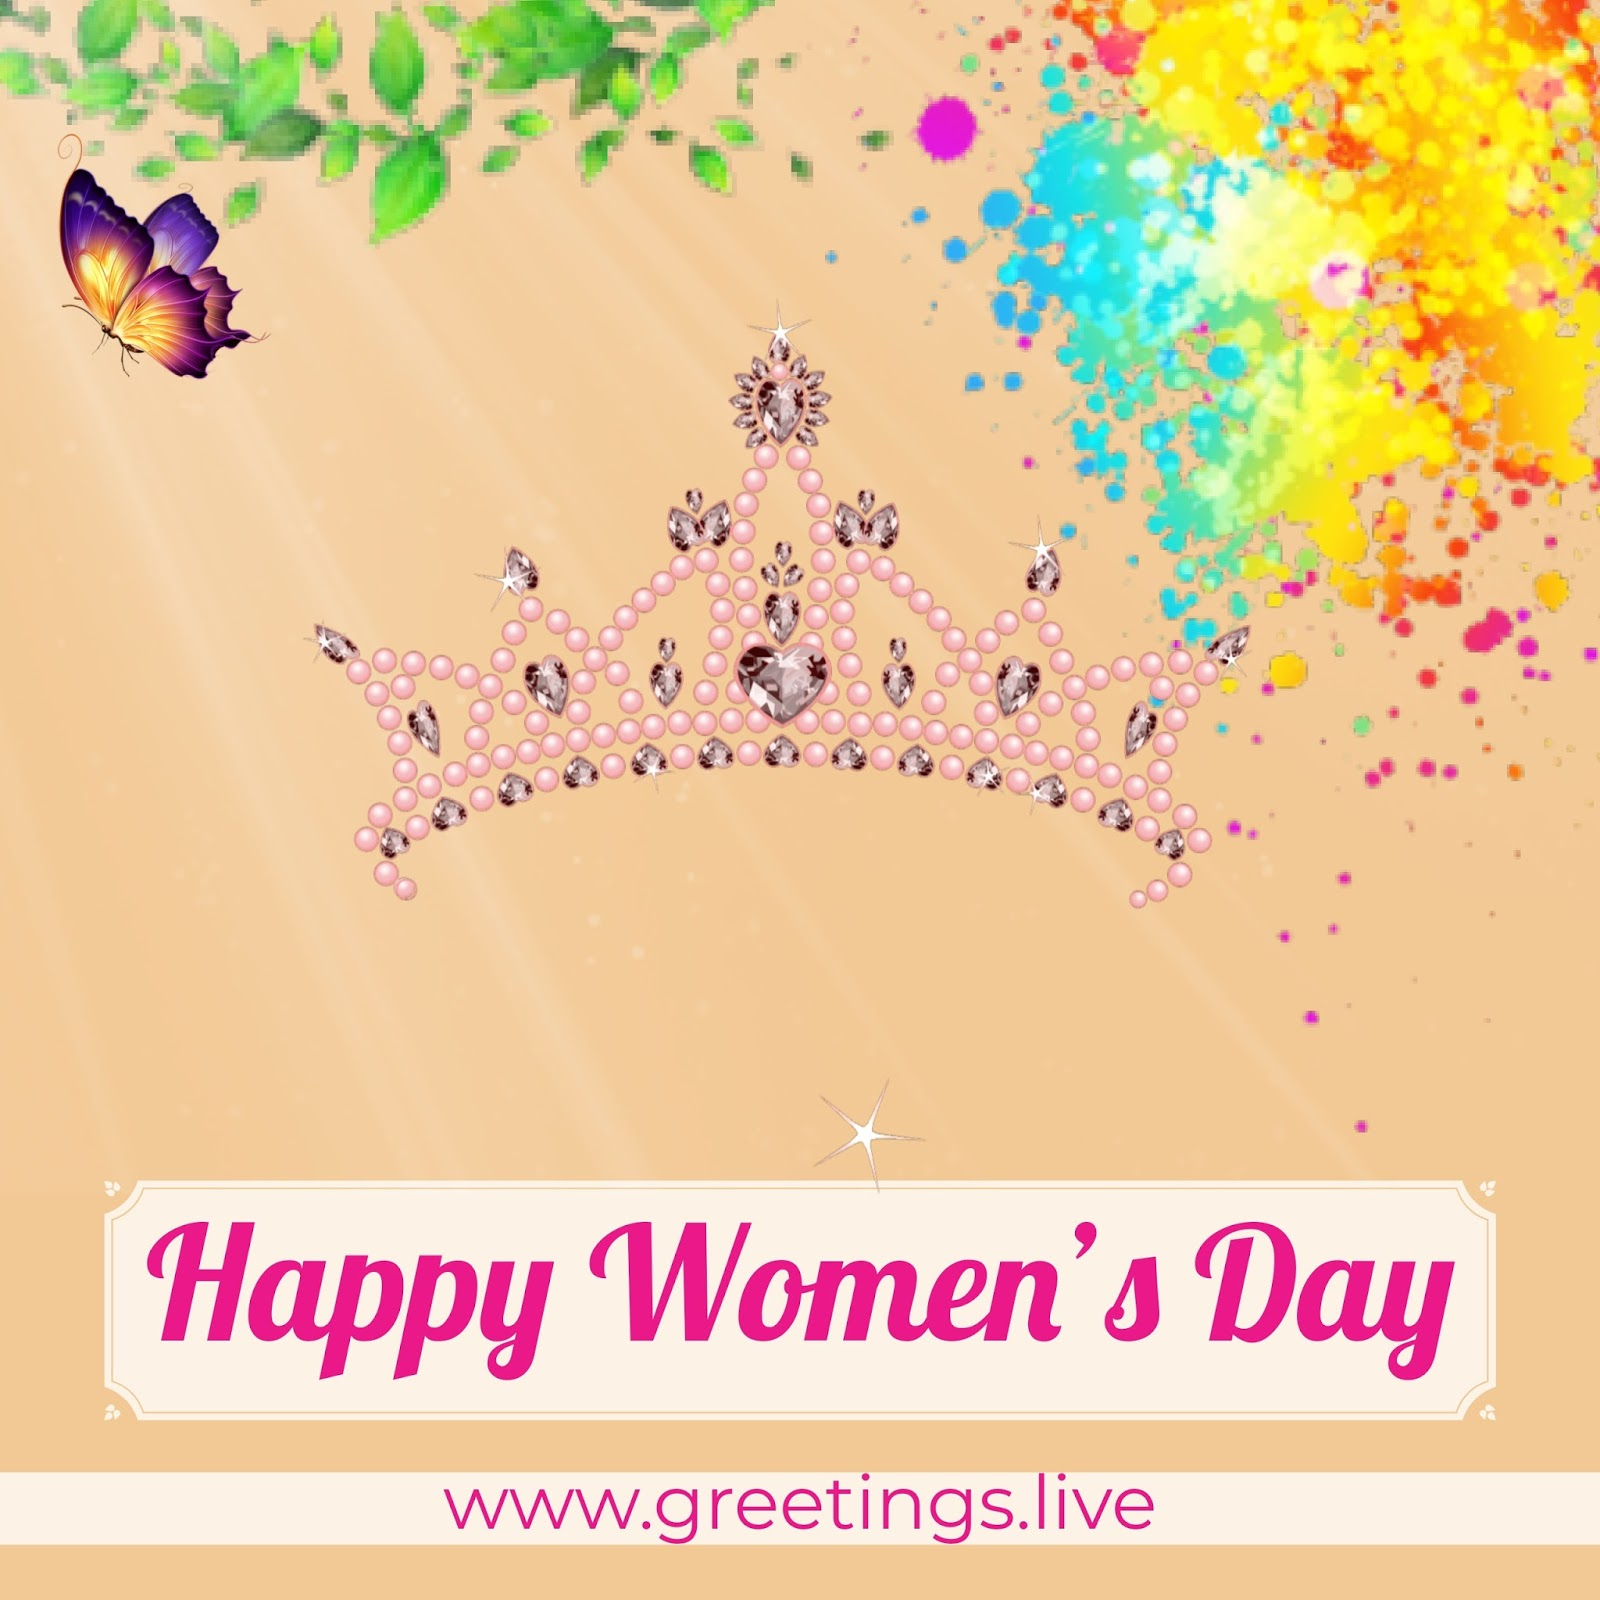 Greetingsve hd images love smile birthday wishes free download happy womens day special greetings live kristyandbryce Gallery